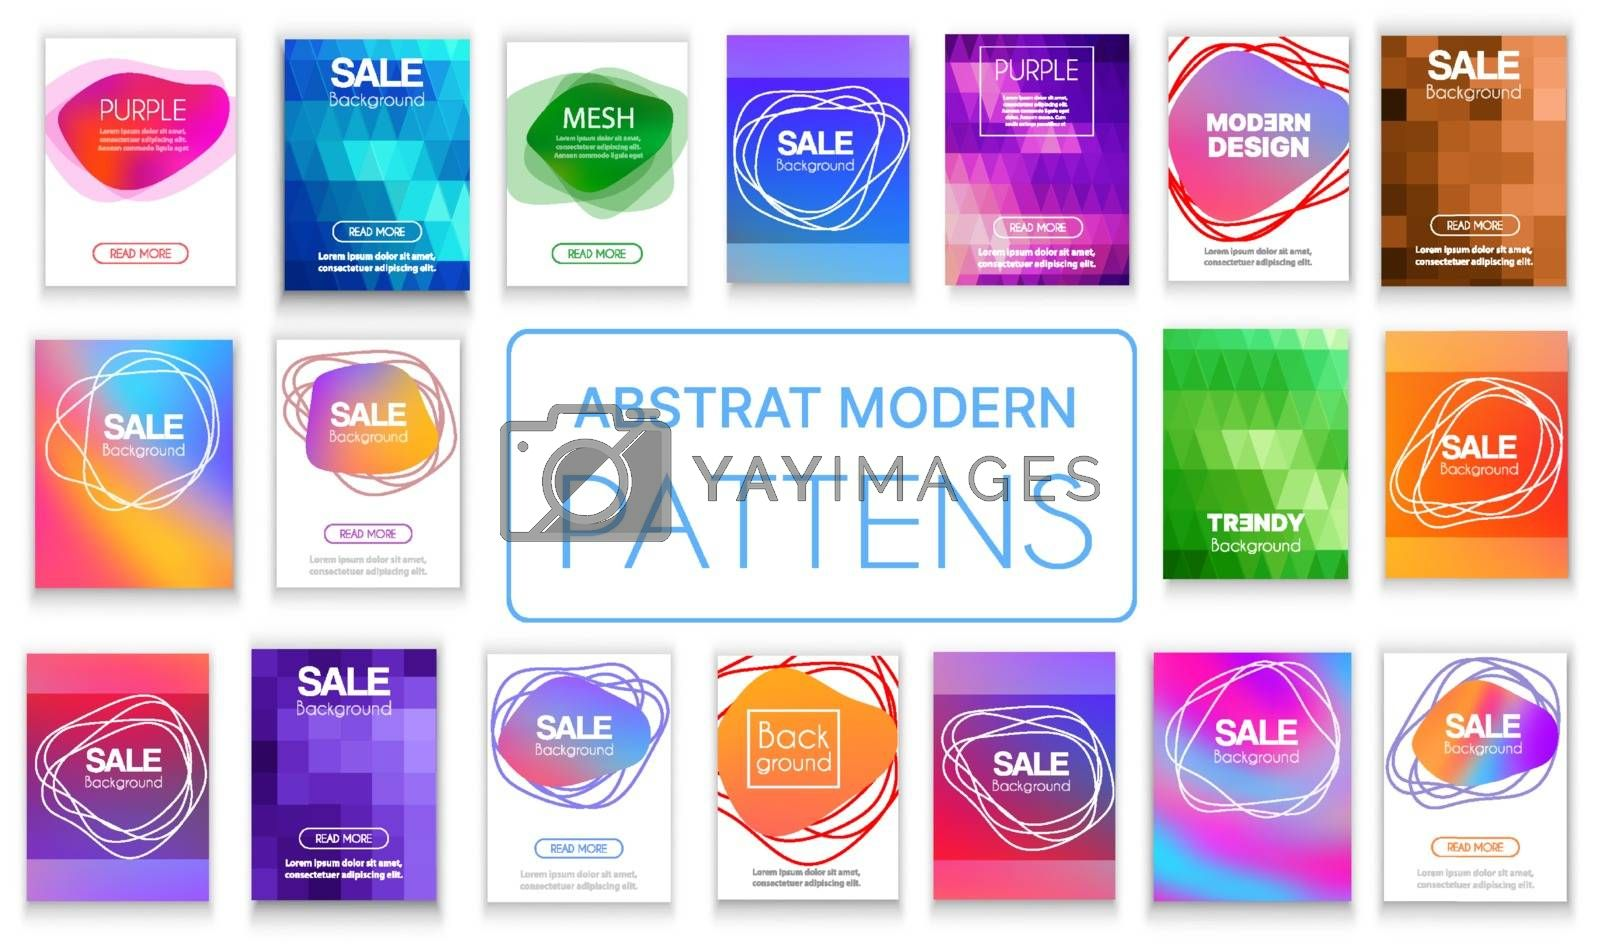 A set of vector abstract backgrounds for web design and stock illustration.